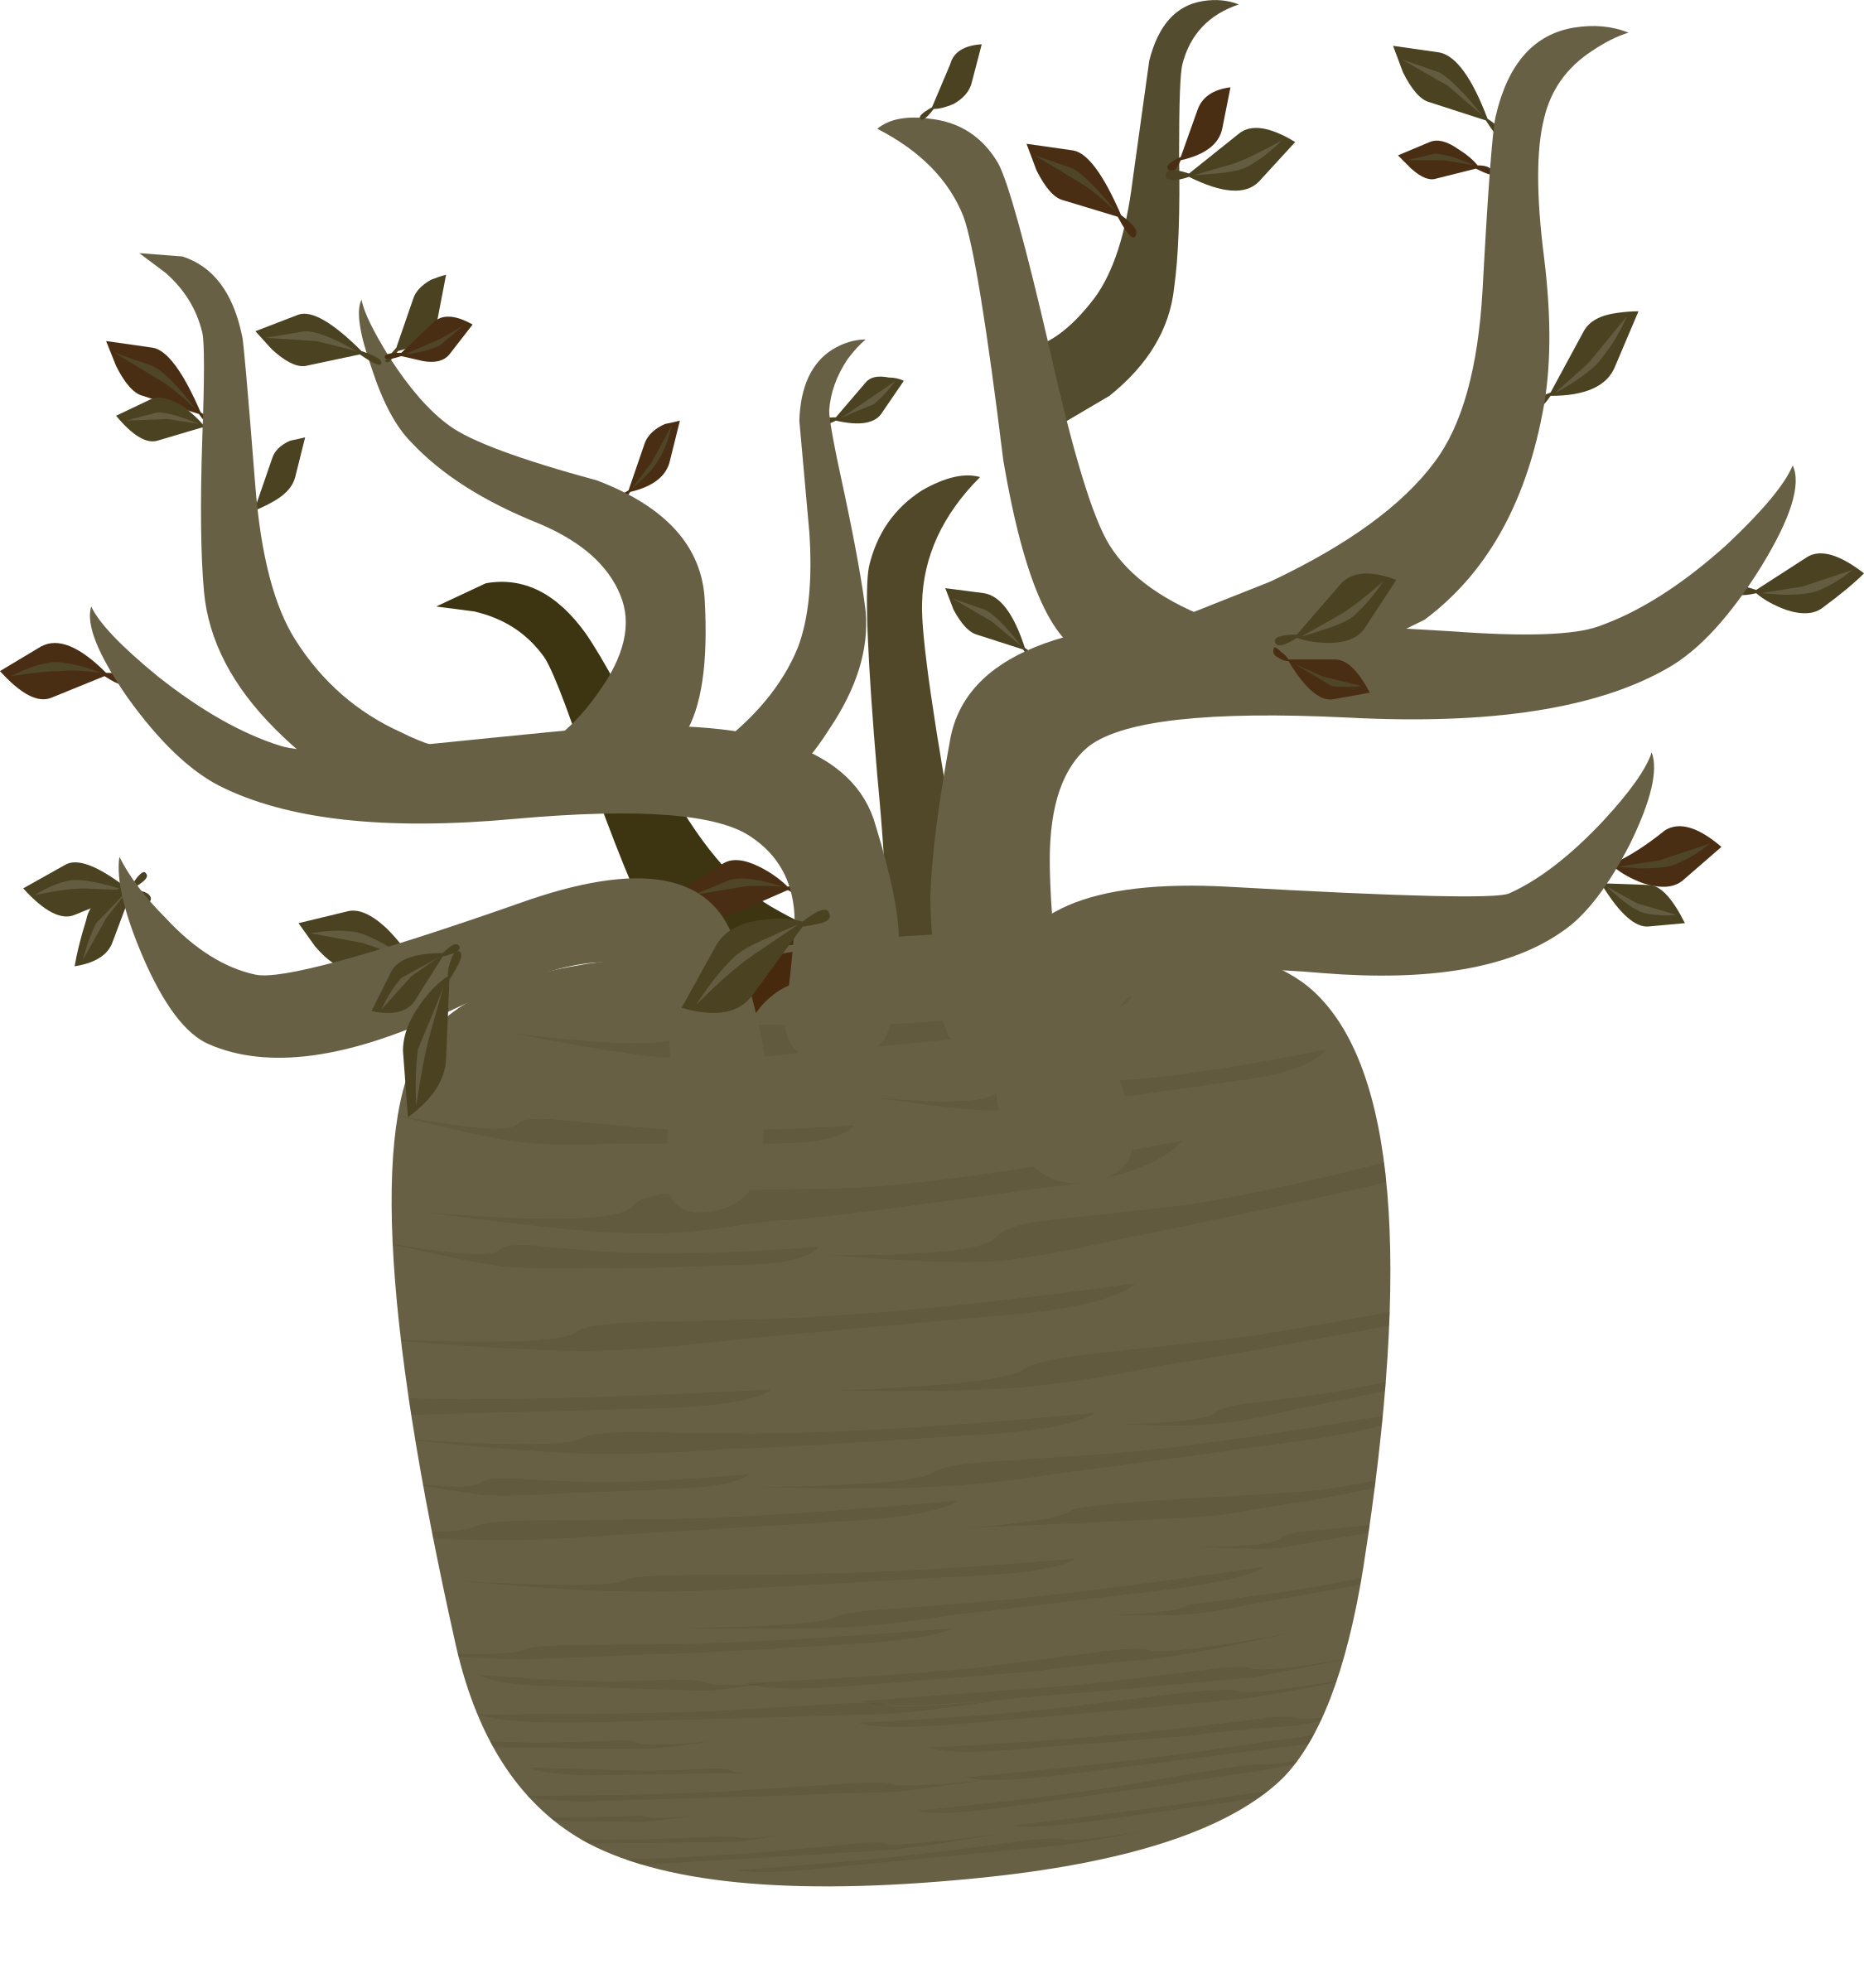 Sprout clipart tree sprout. Firebog big image png